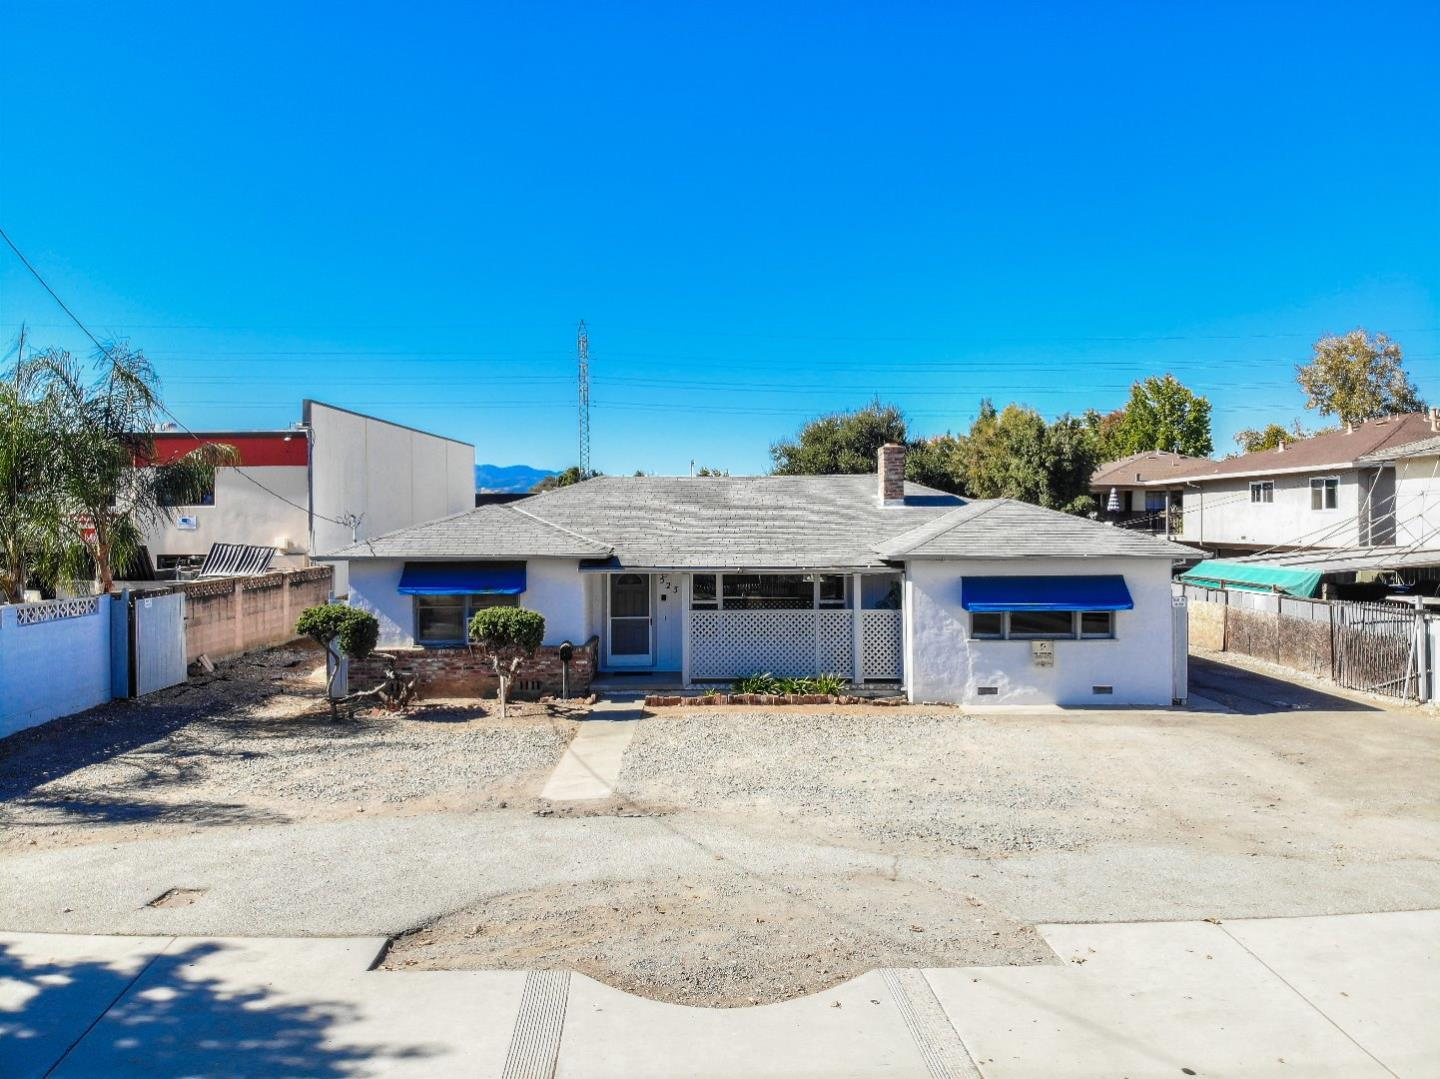 523 UNION AVE, CAMPBELL, CA 95008